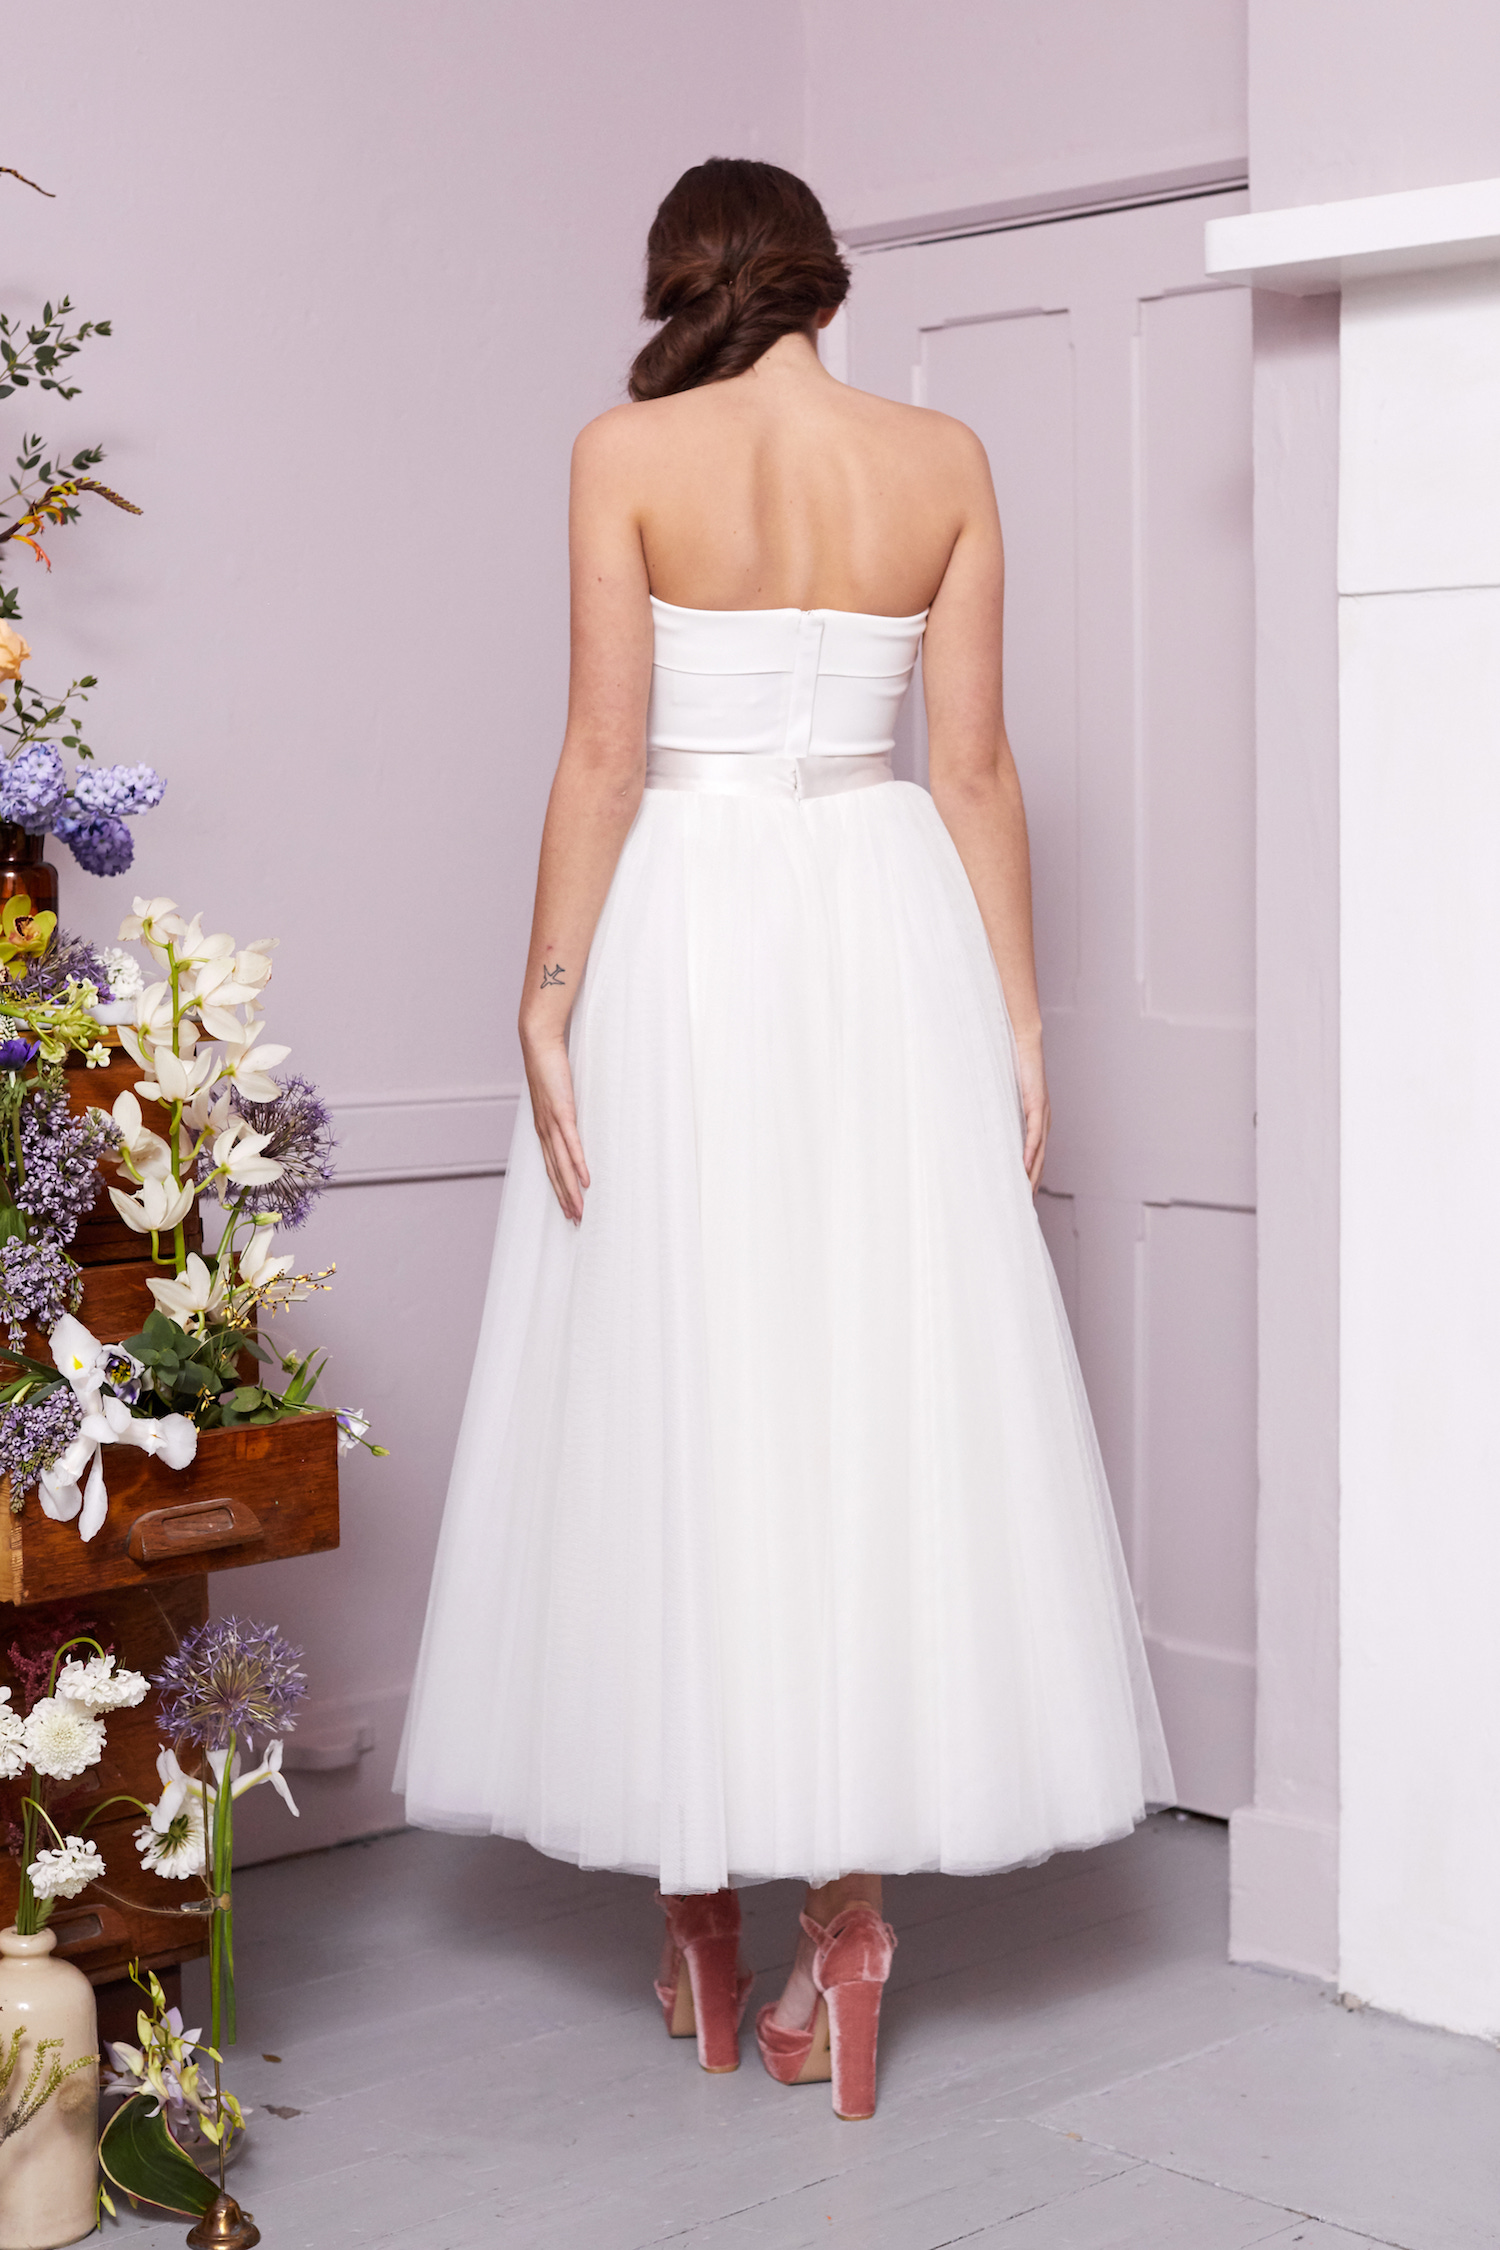 RILEY CORSET & HOCKNEY SKIRT | WEDDING DRESS BY HALFPENNY LONDON